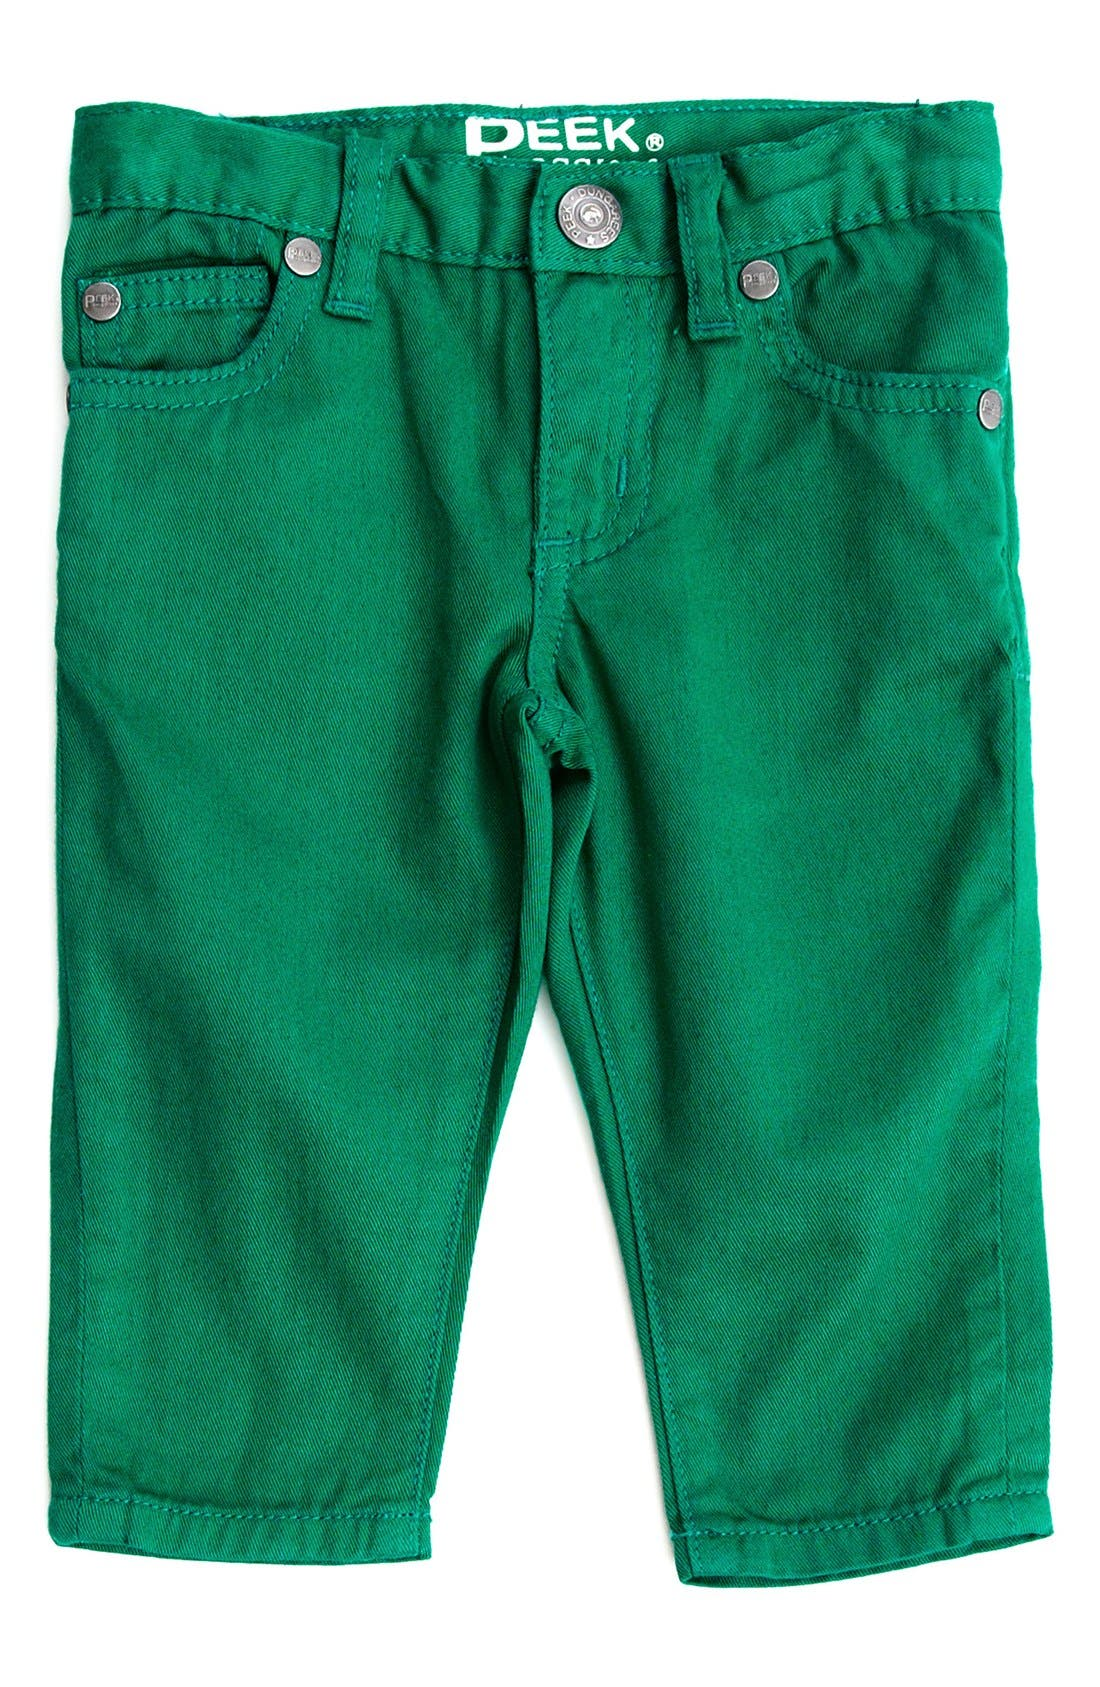 Alternate Image 1 Selected - Peek Slouch Twill Jeans (Baby Boys)